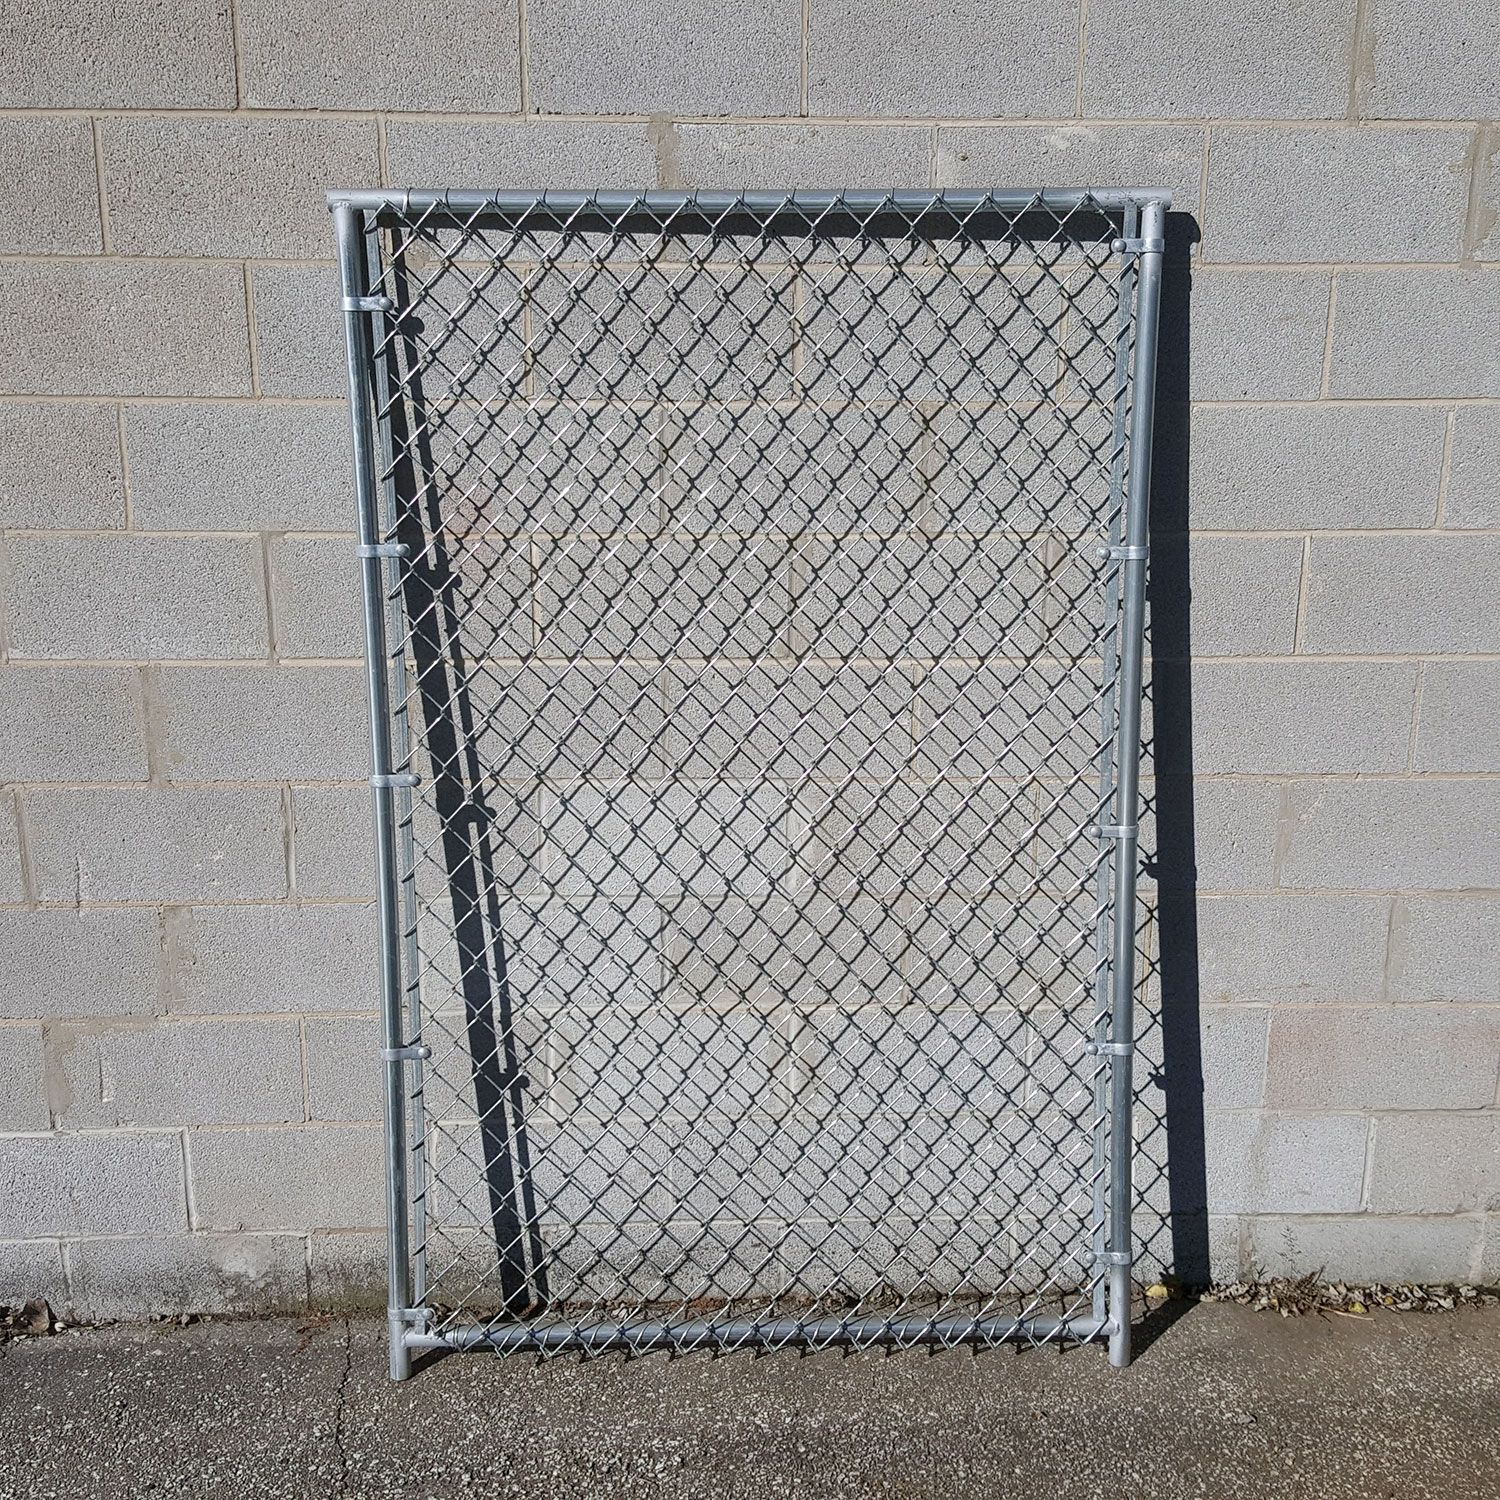 Hoover Fence Chain Link Kennel Panels - Heavy Grade - HF20 Frame w/ 9 ga. Fabric